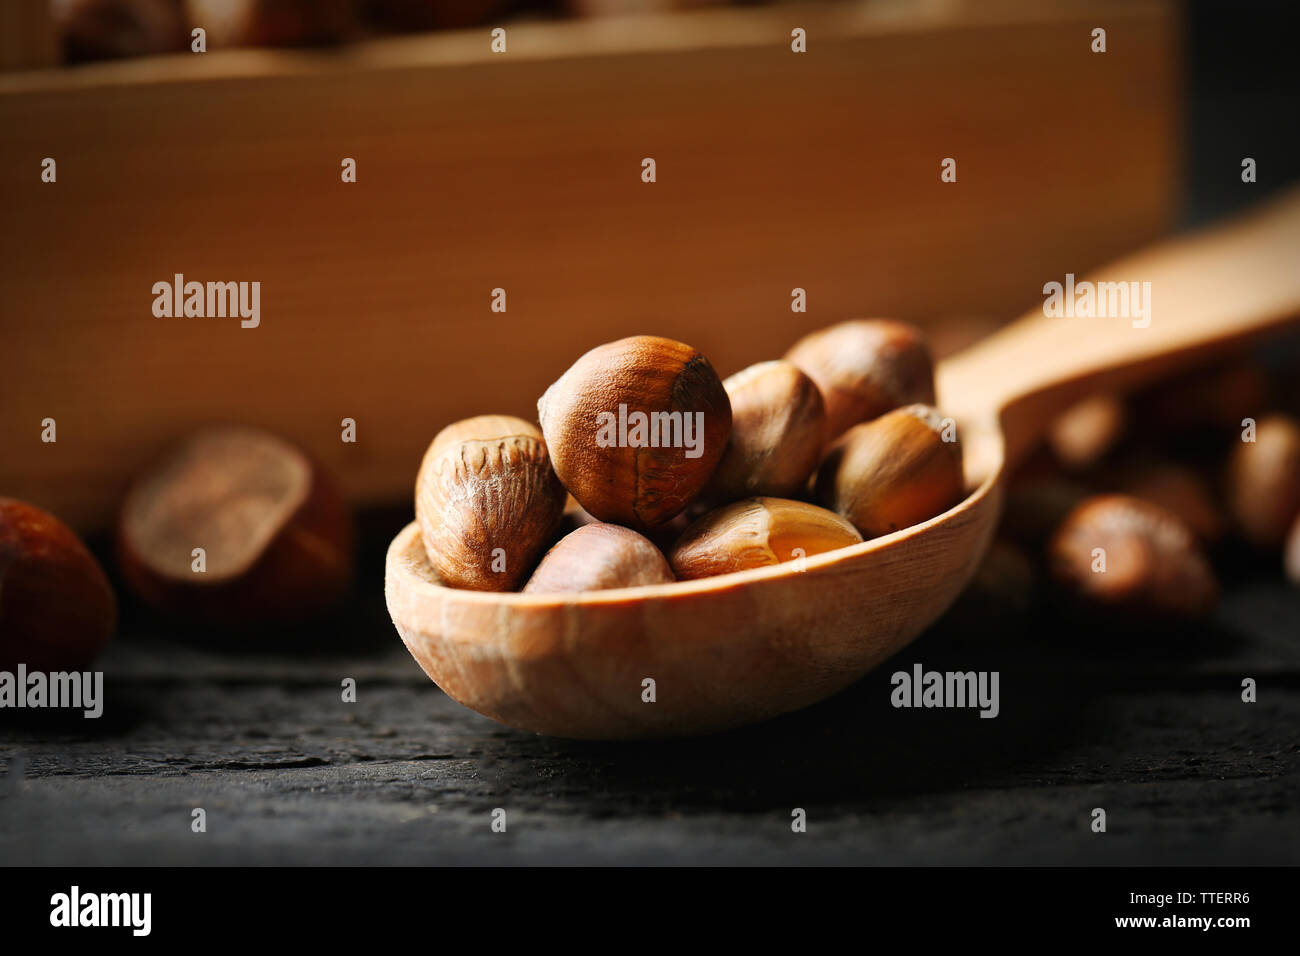 Hazelnuts in wooden box and spoon on the table, close-up Stock Photo